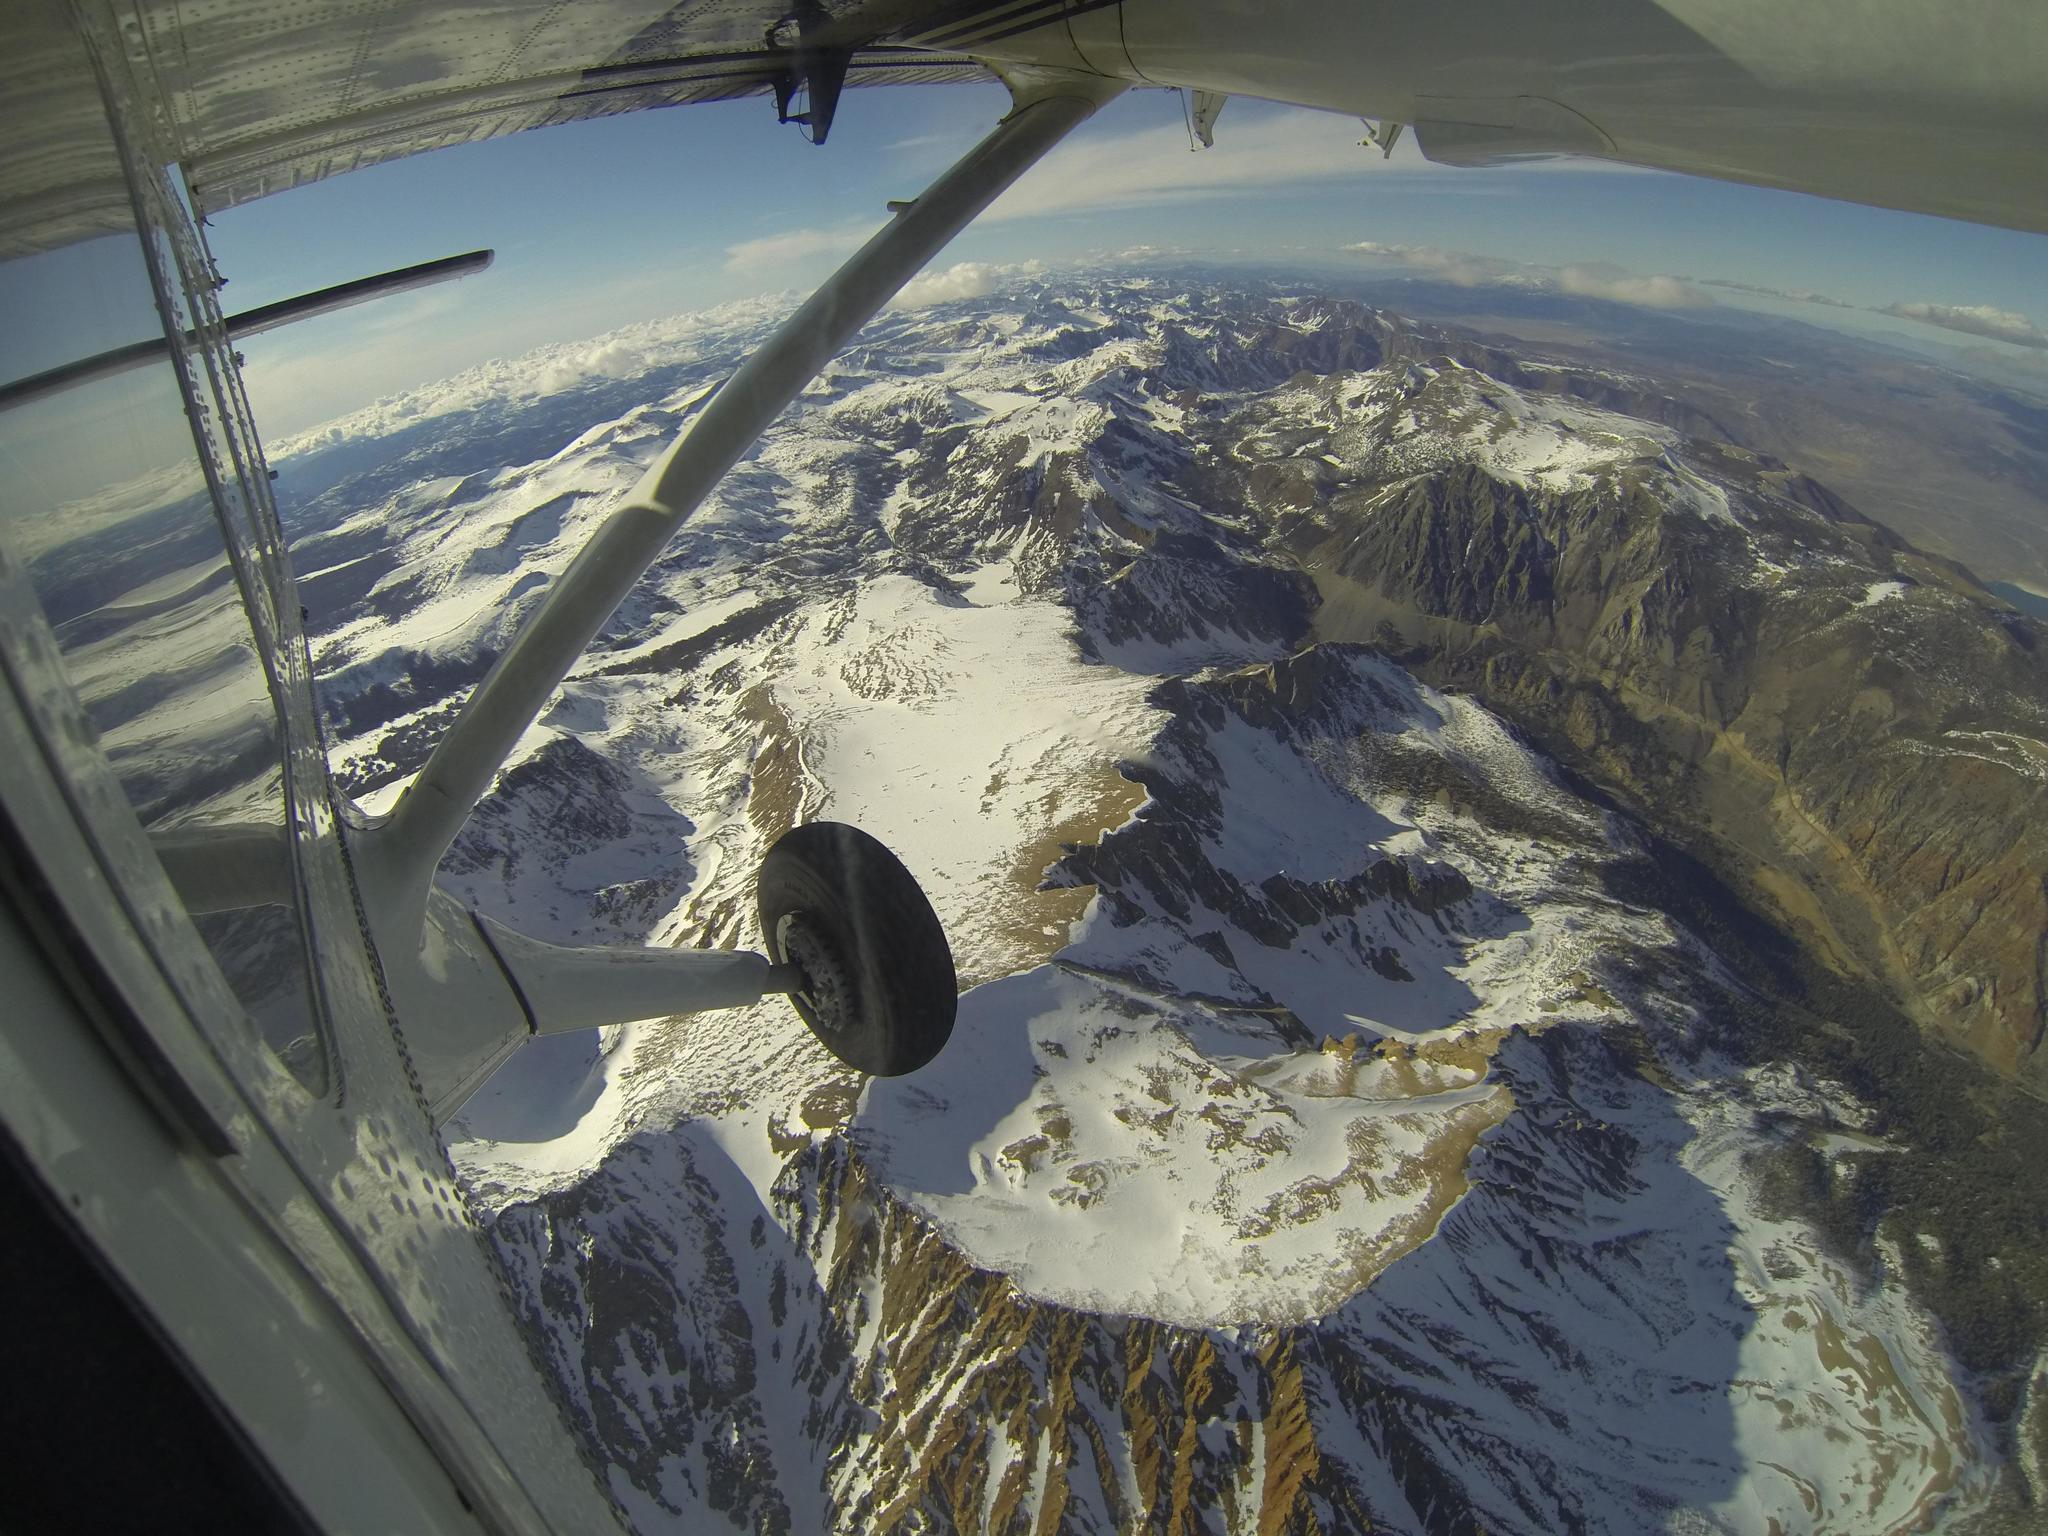 An Airborne Snow Observatory flight over the Tuolumne River basin in 2013.